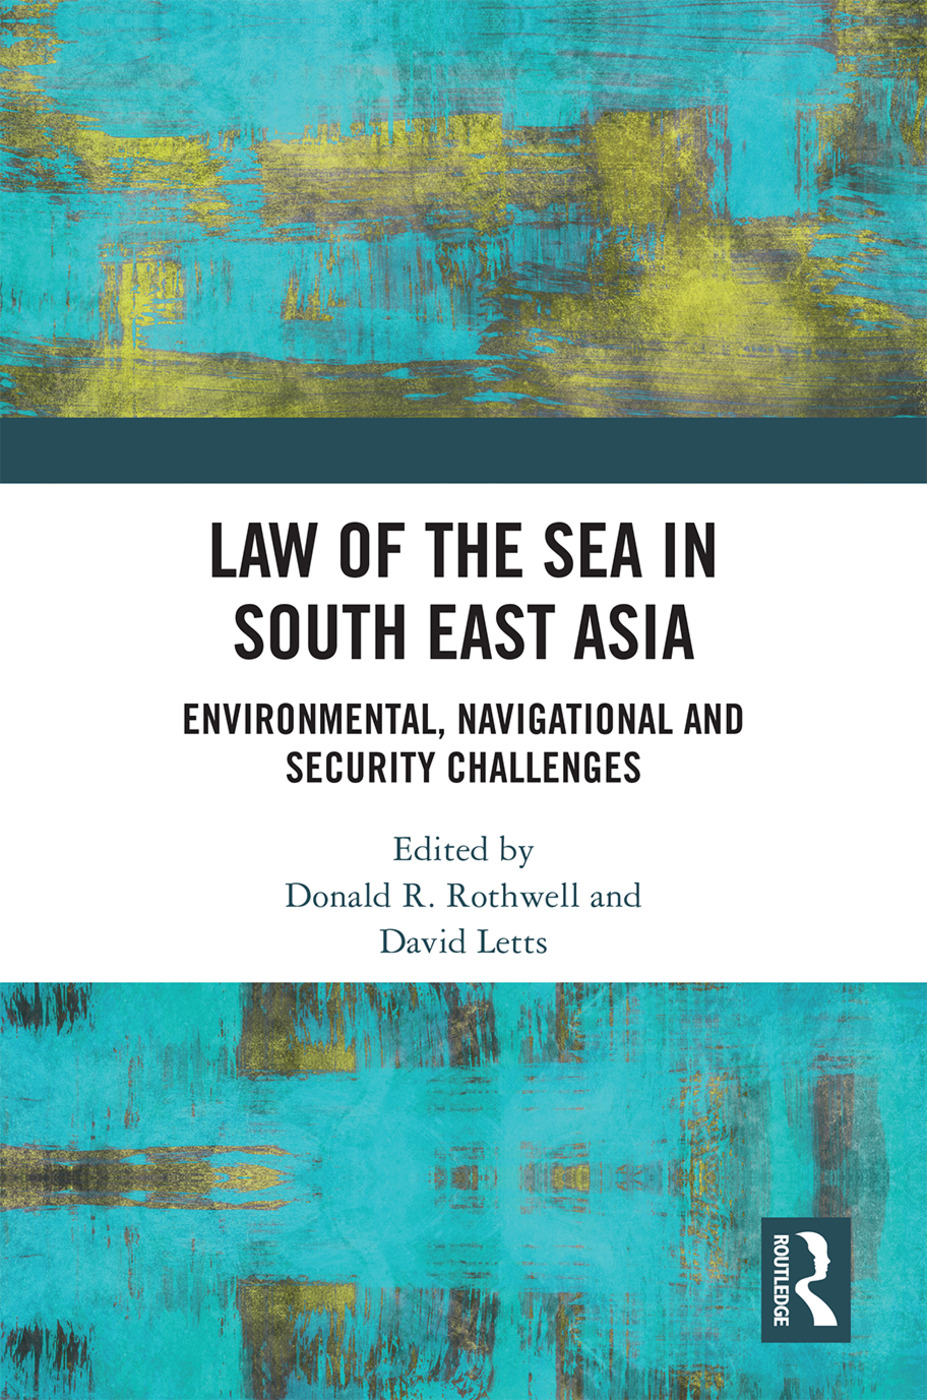 Law of the Sea in South East Asia: Environmental, Navigational and Security Challenges book cover